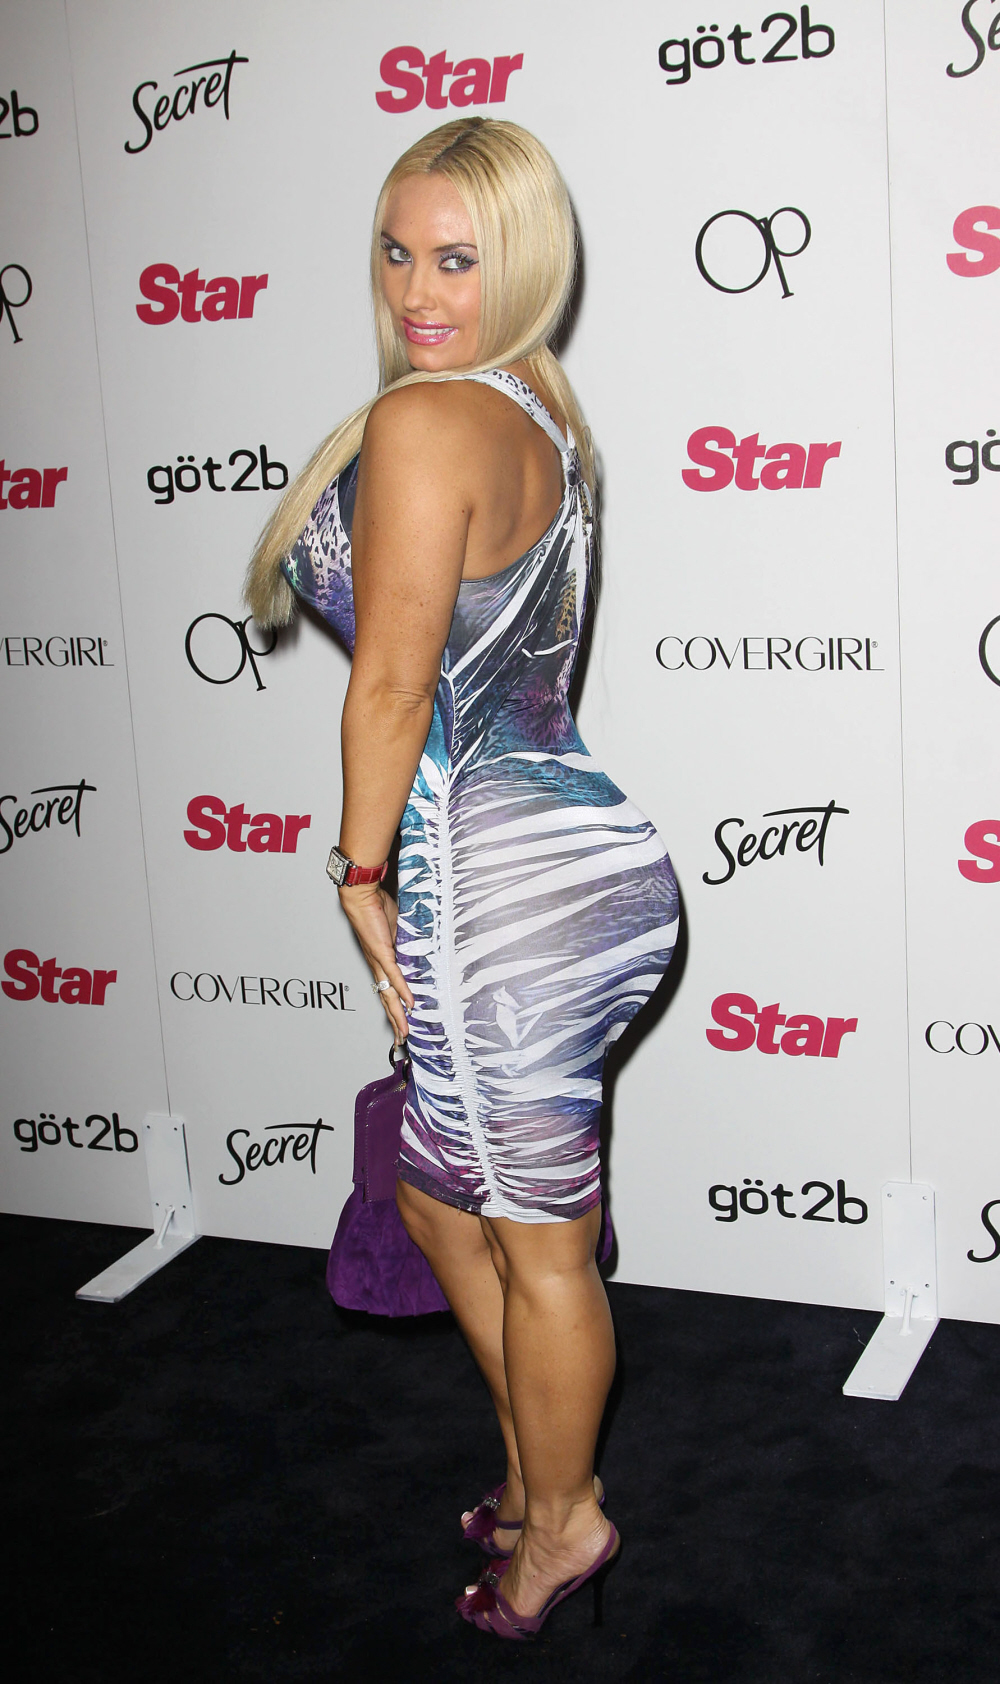 with coco nicole austin ice t s wife i m not really sure why coco